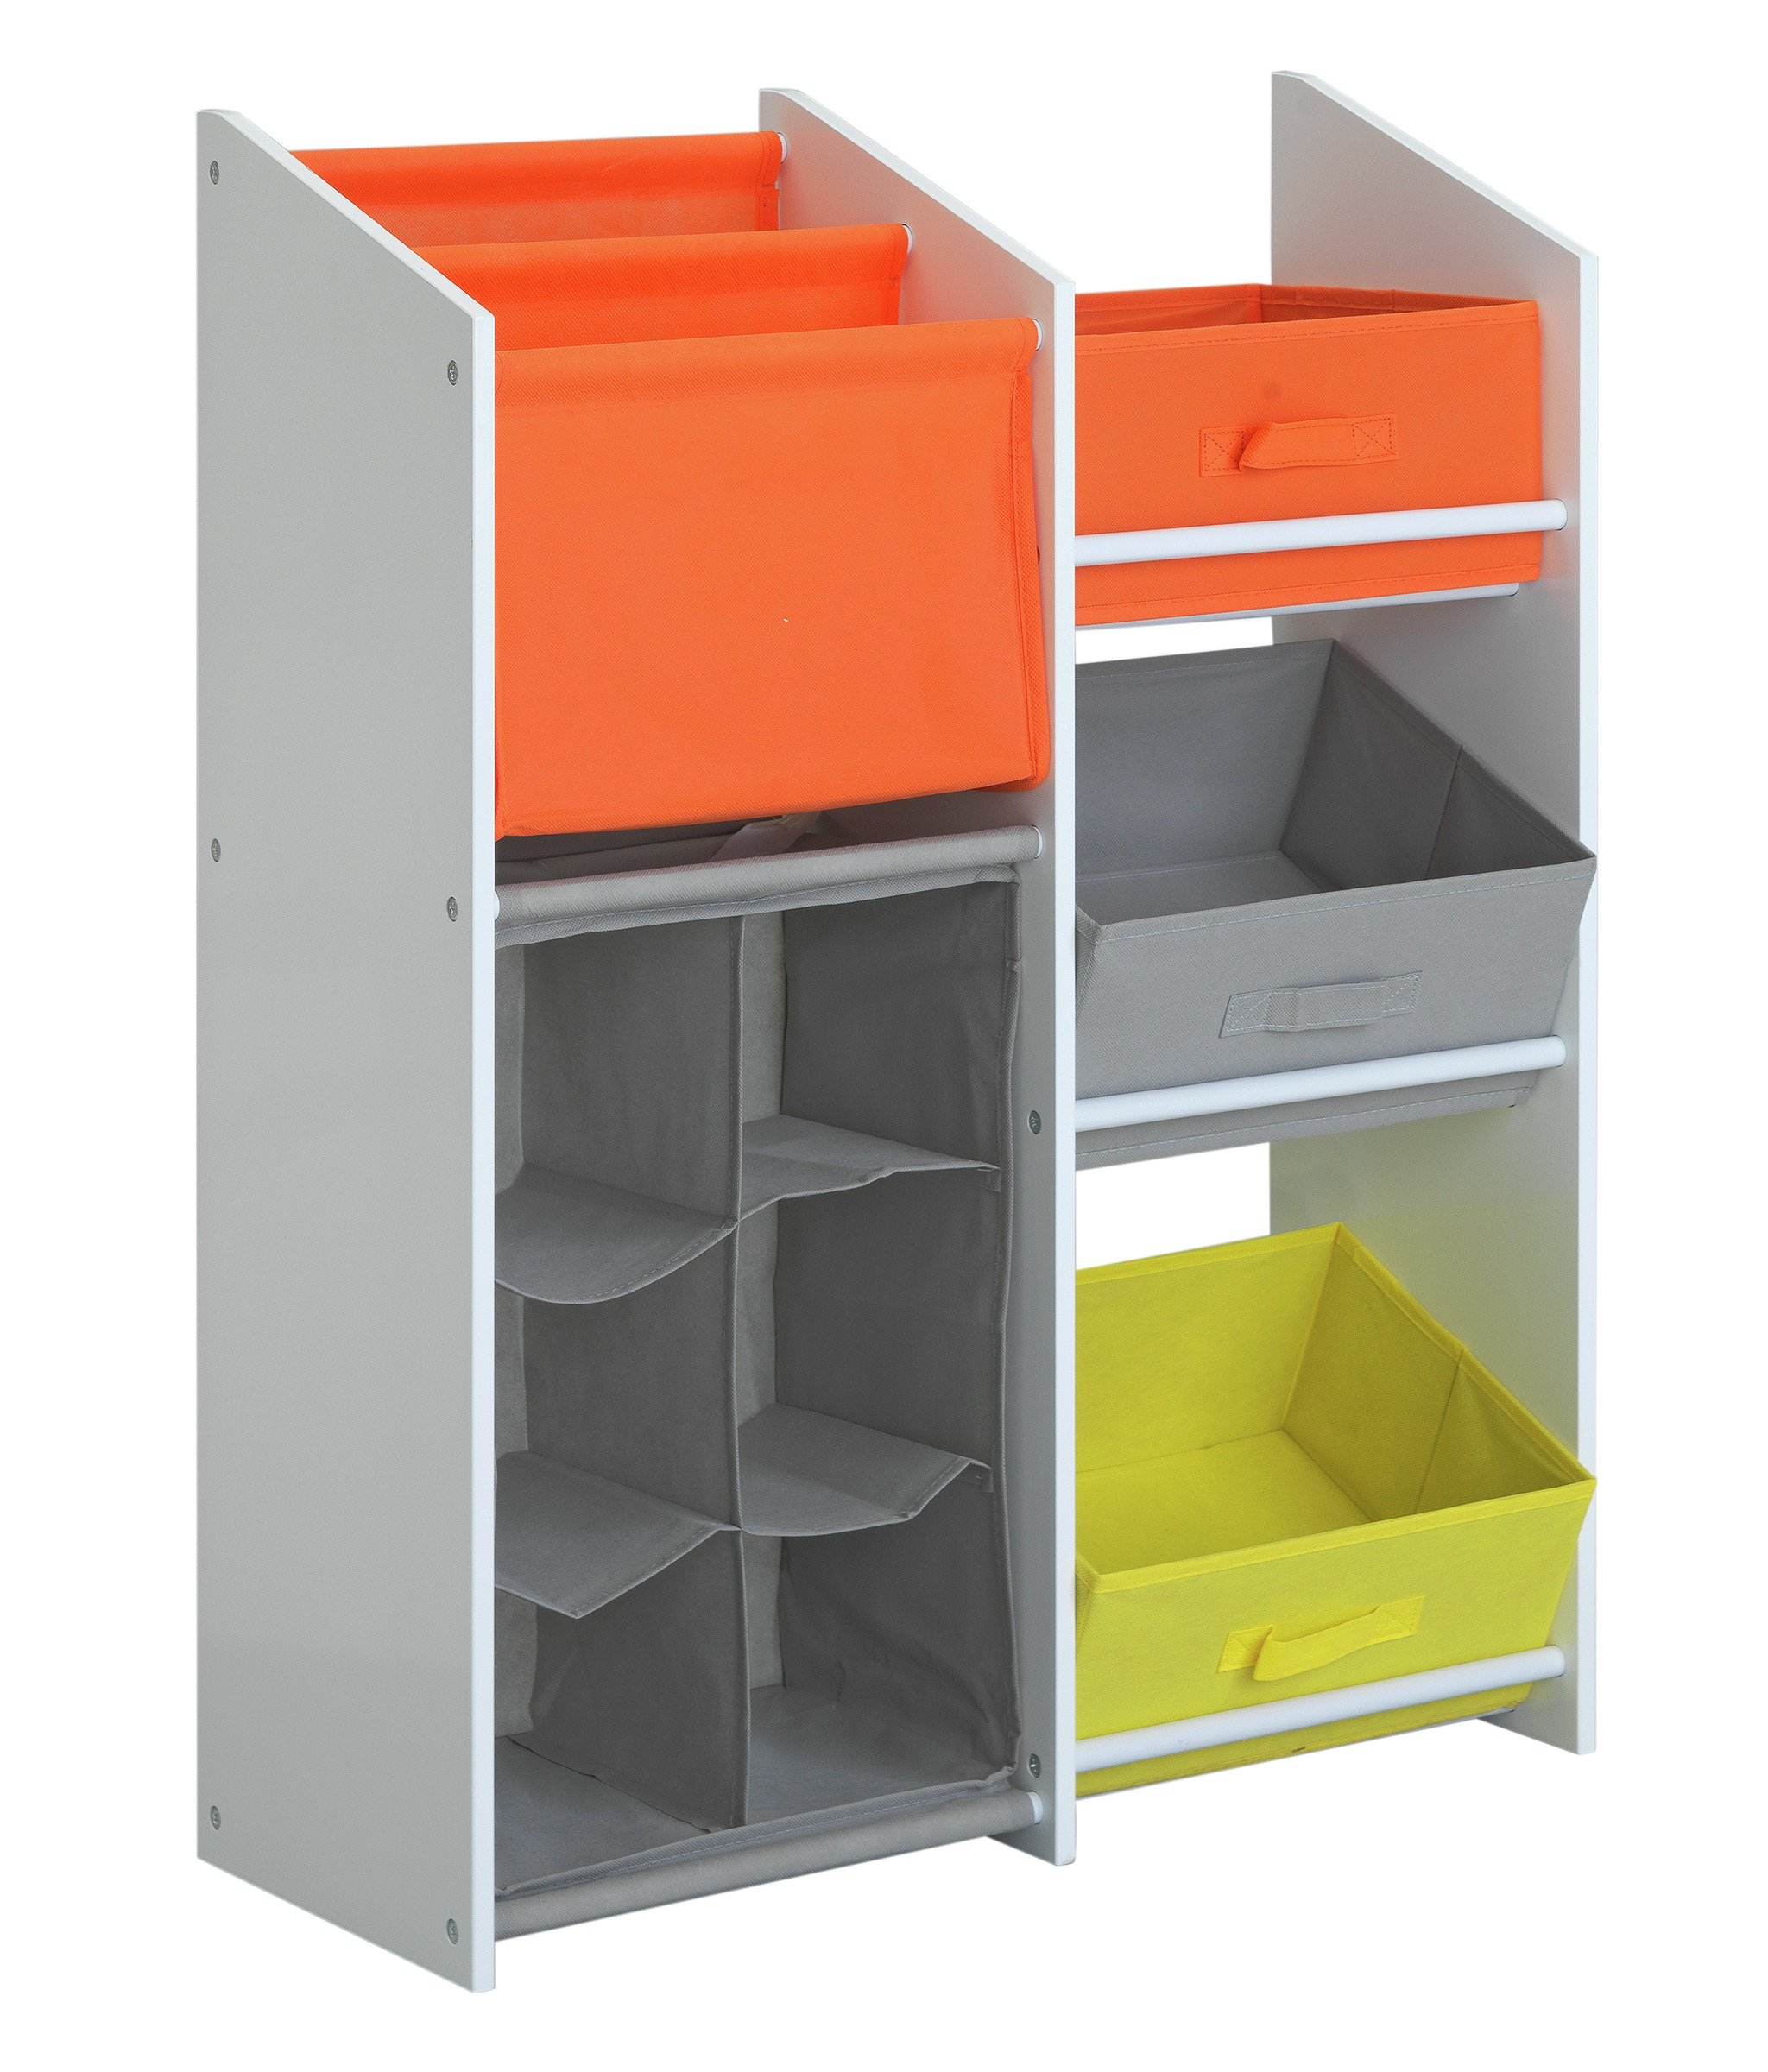 Home Multifunction Childrens Storage Unit Review